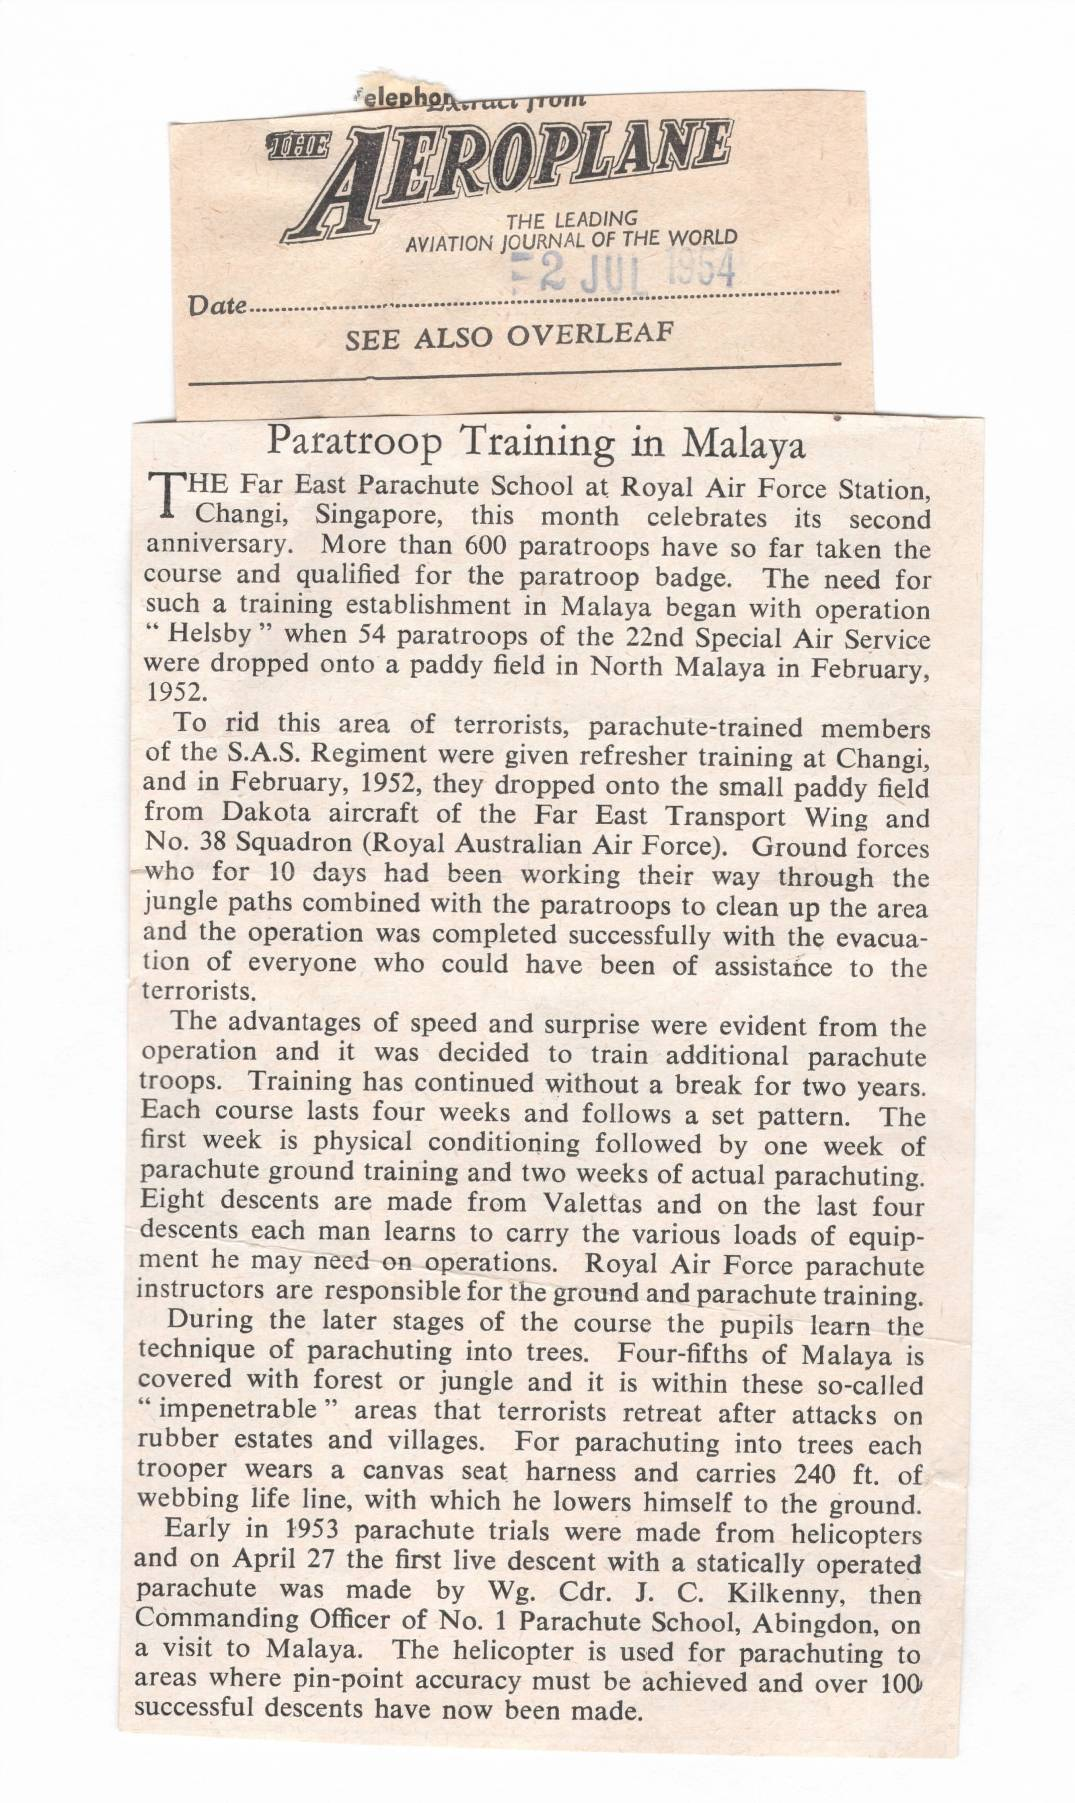 PARATROOP TRAINING IN MALAYA THE AEROLANE 2 JULY 1964